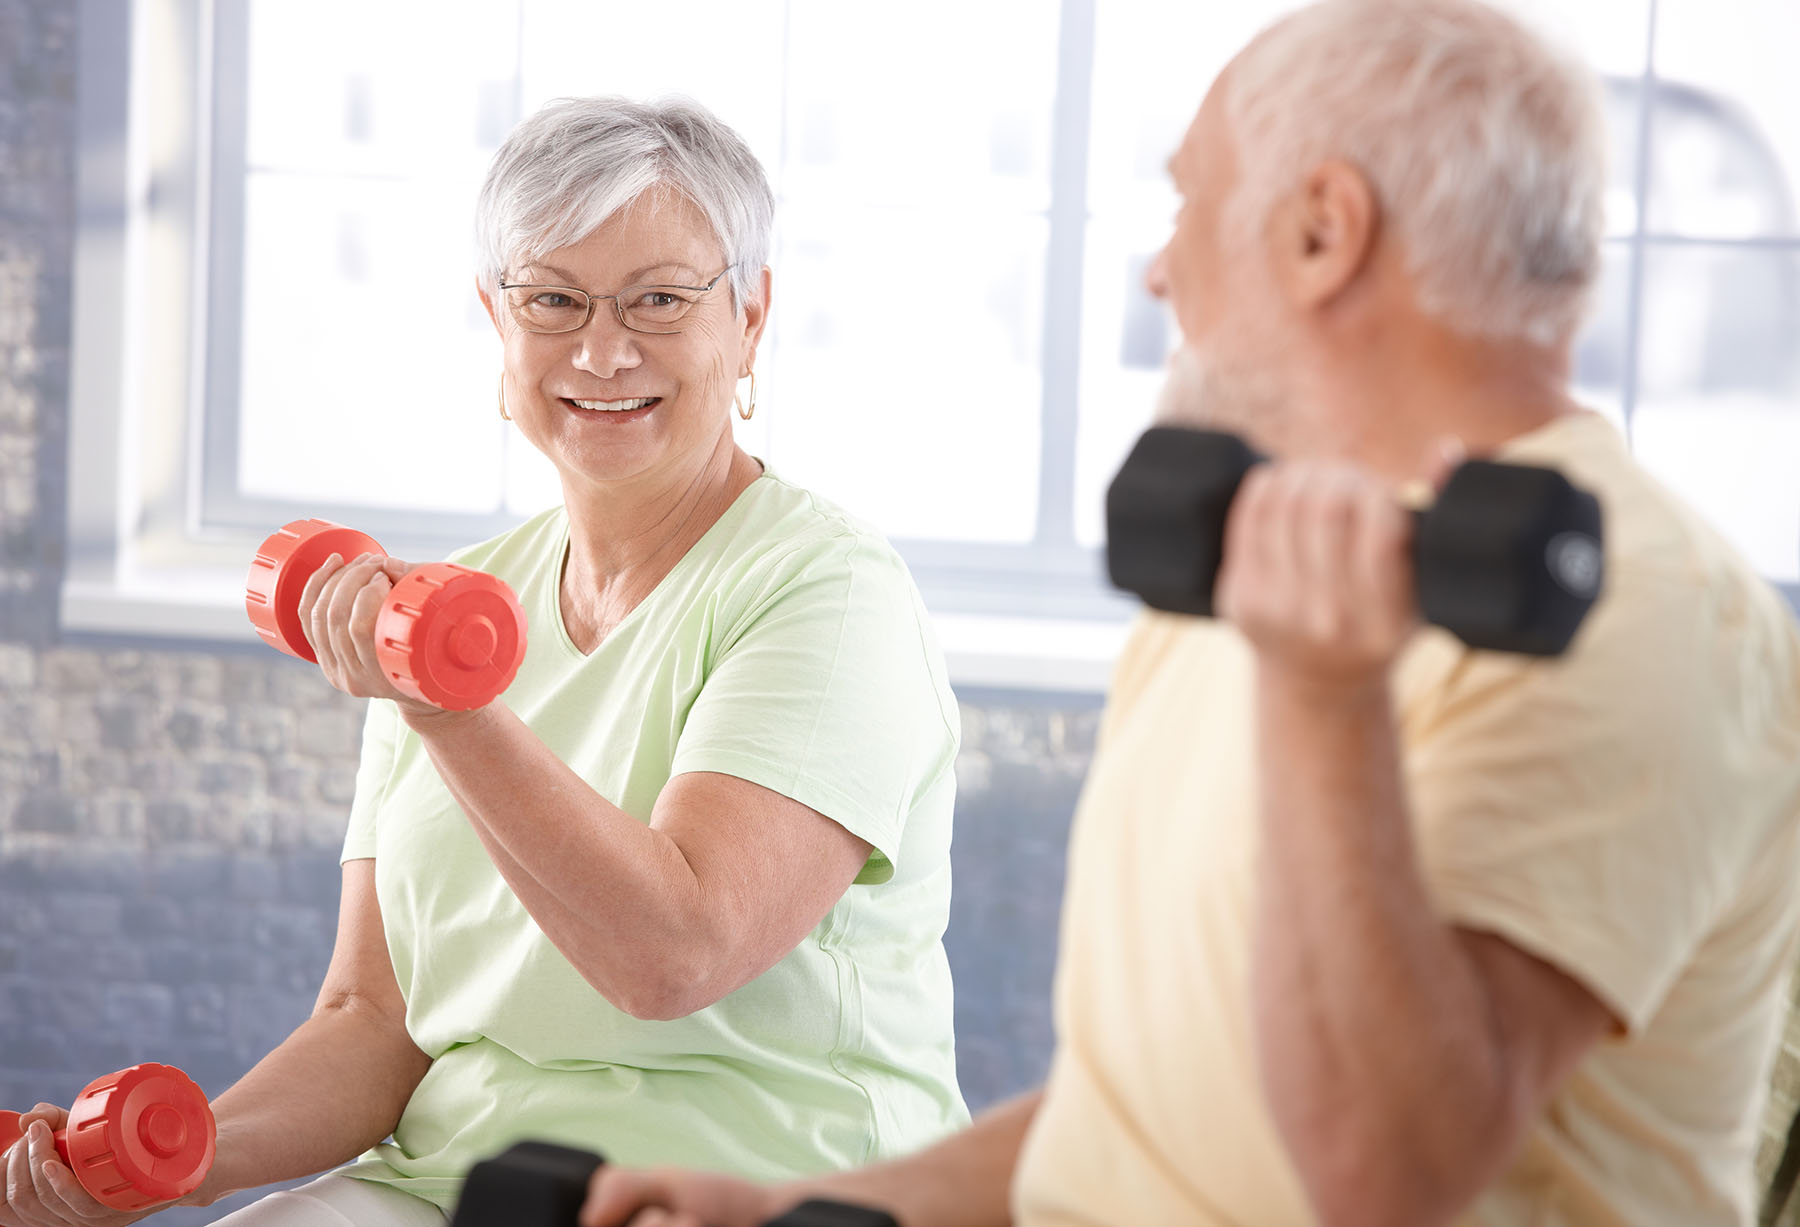 Bone health remains important as we age